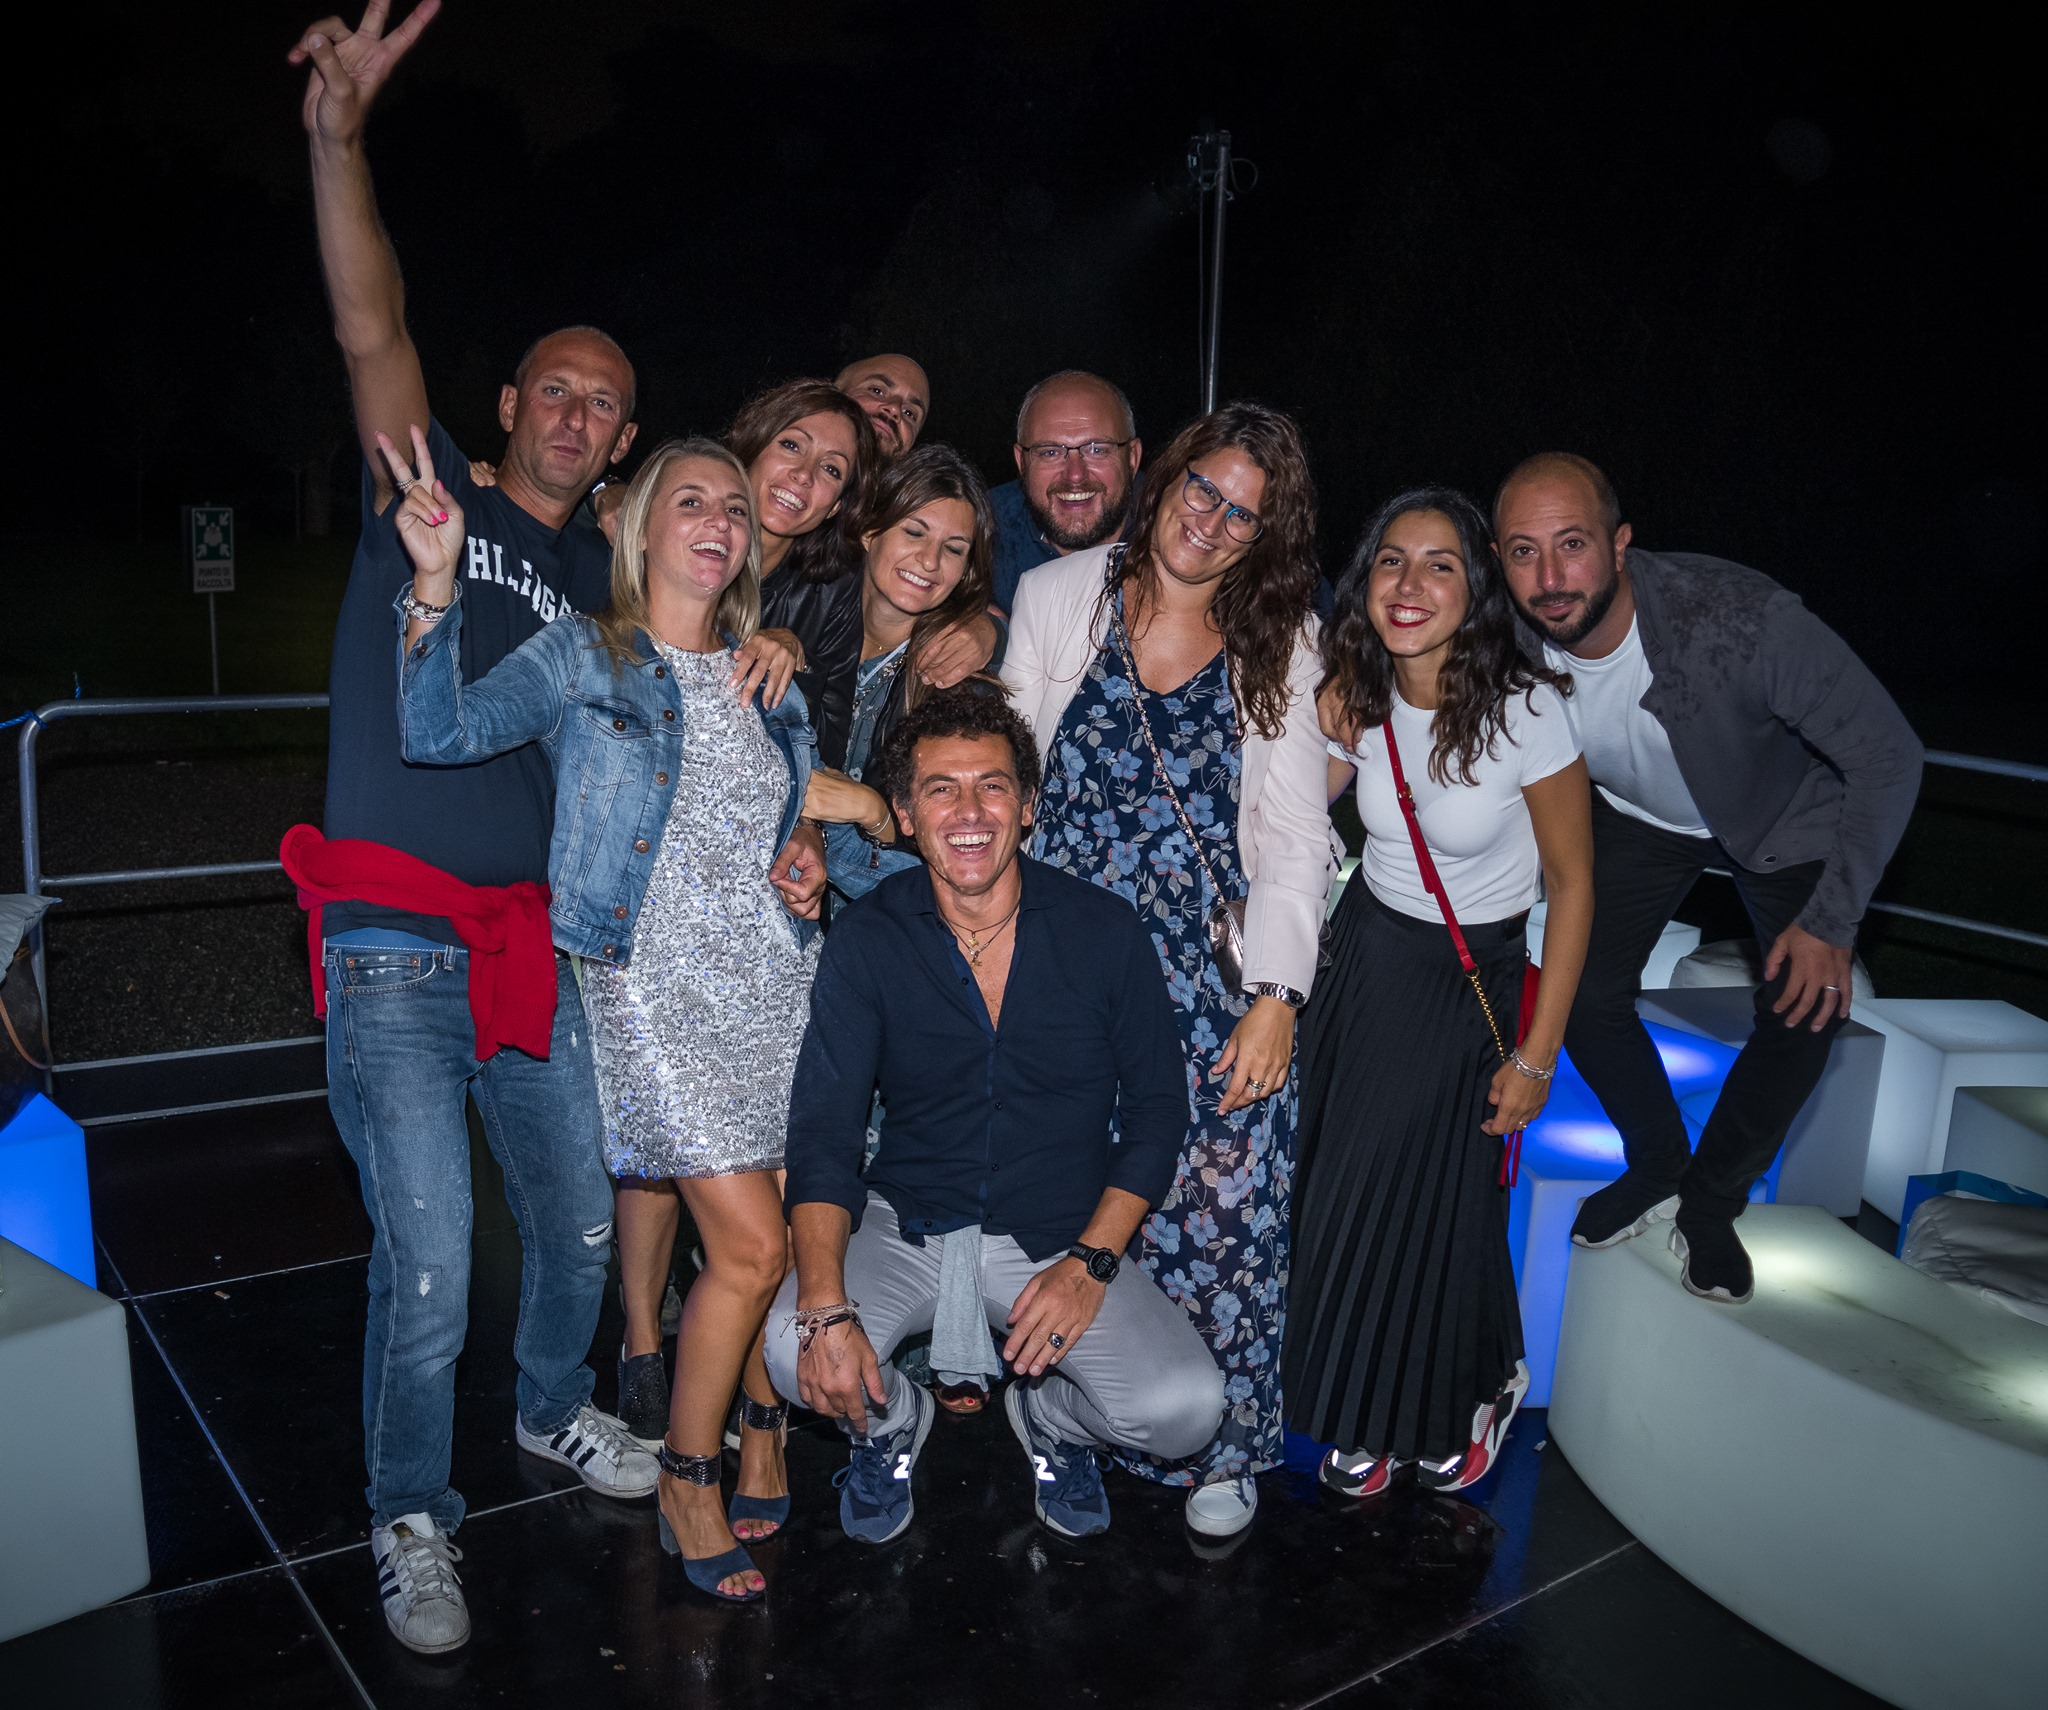 Villa Reale di Monza | Formula 1 GP Party YOUparti